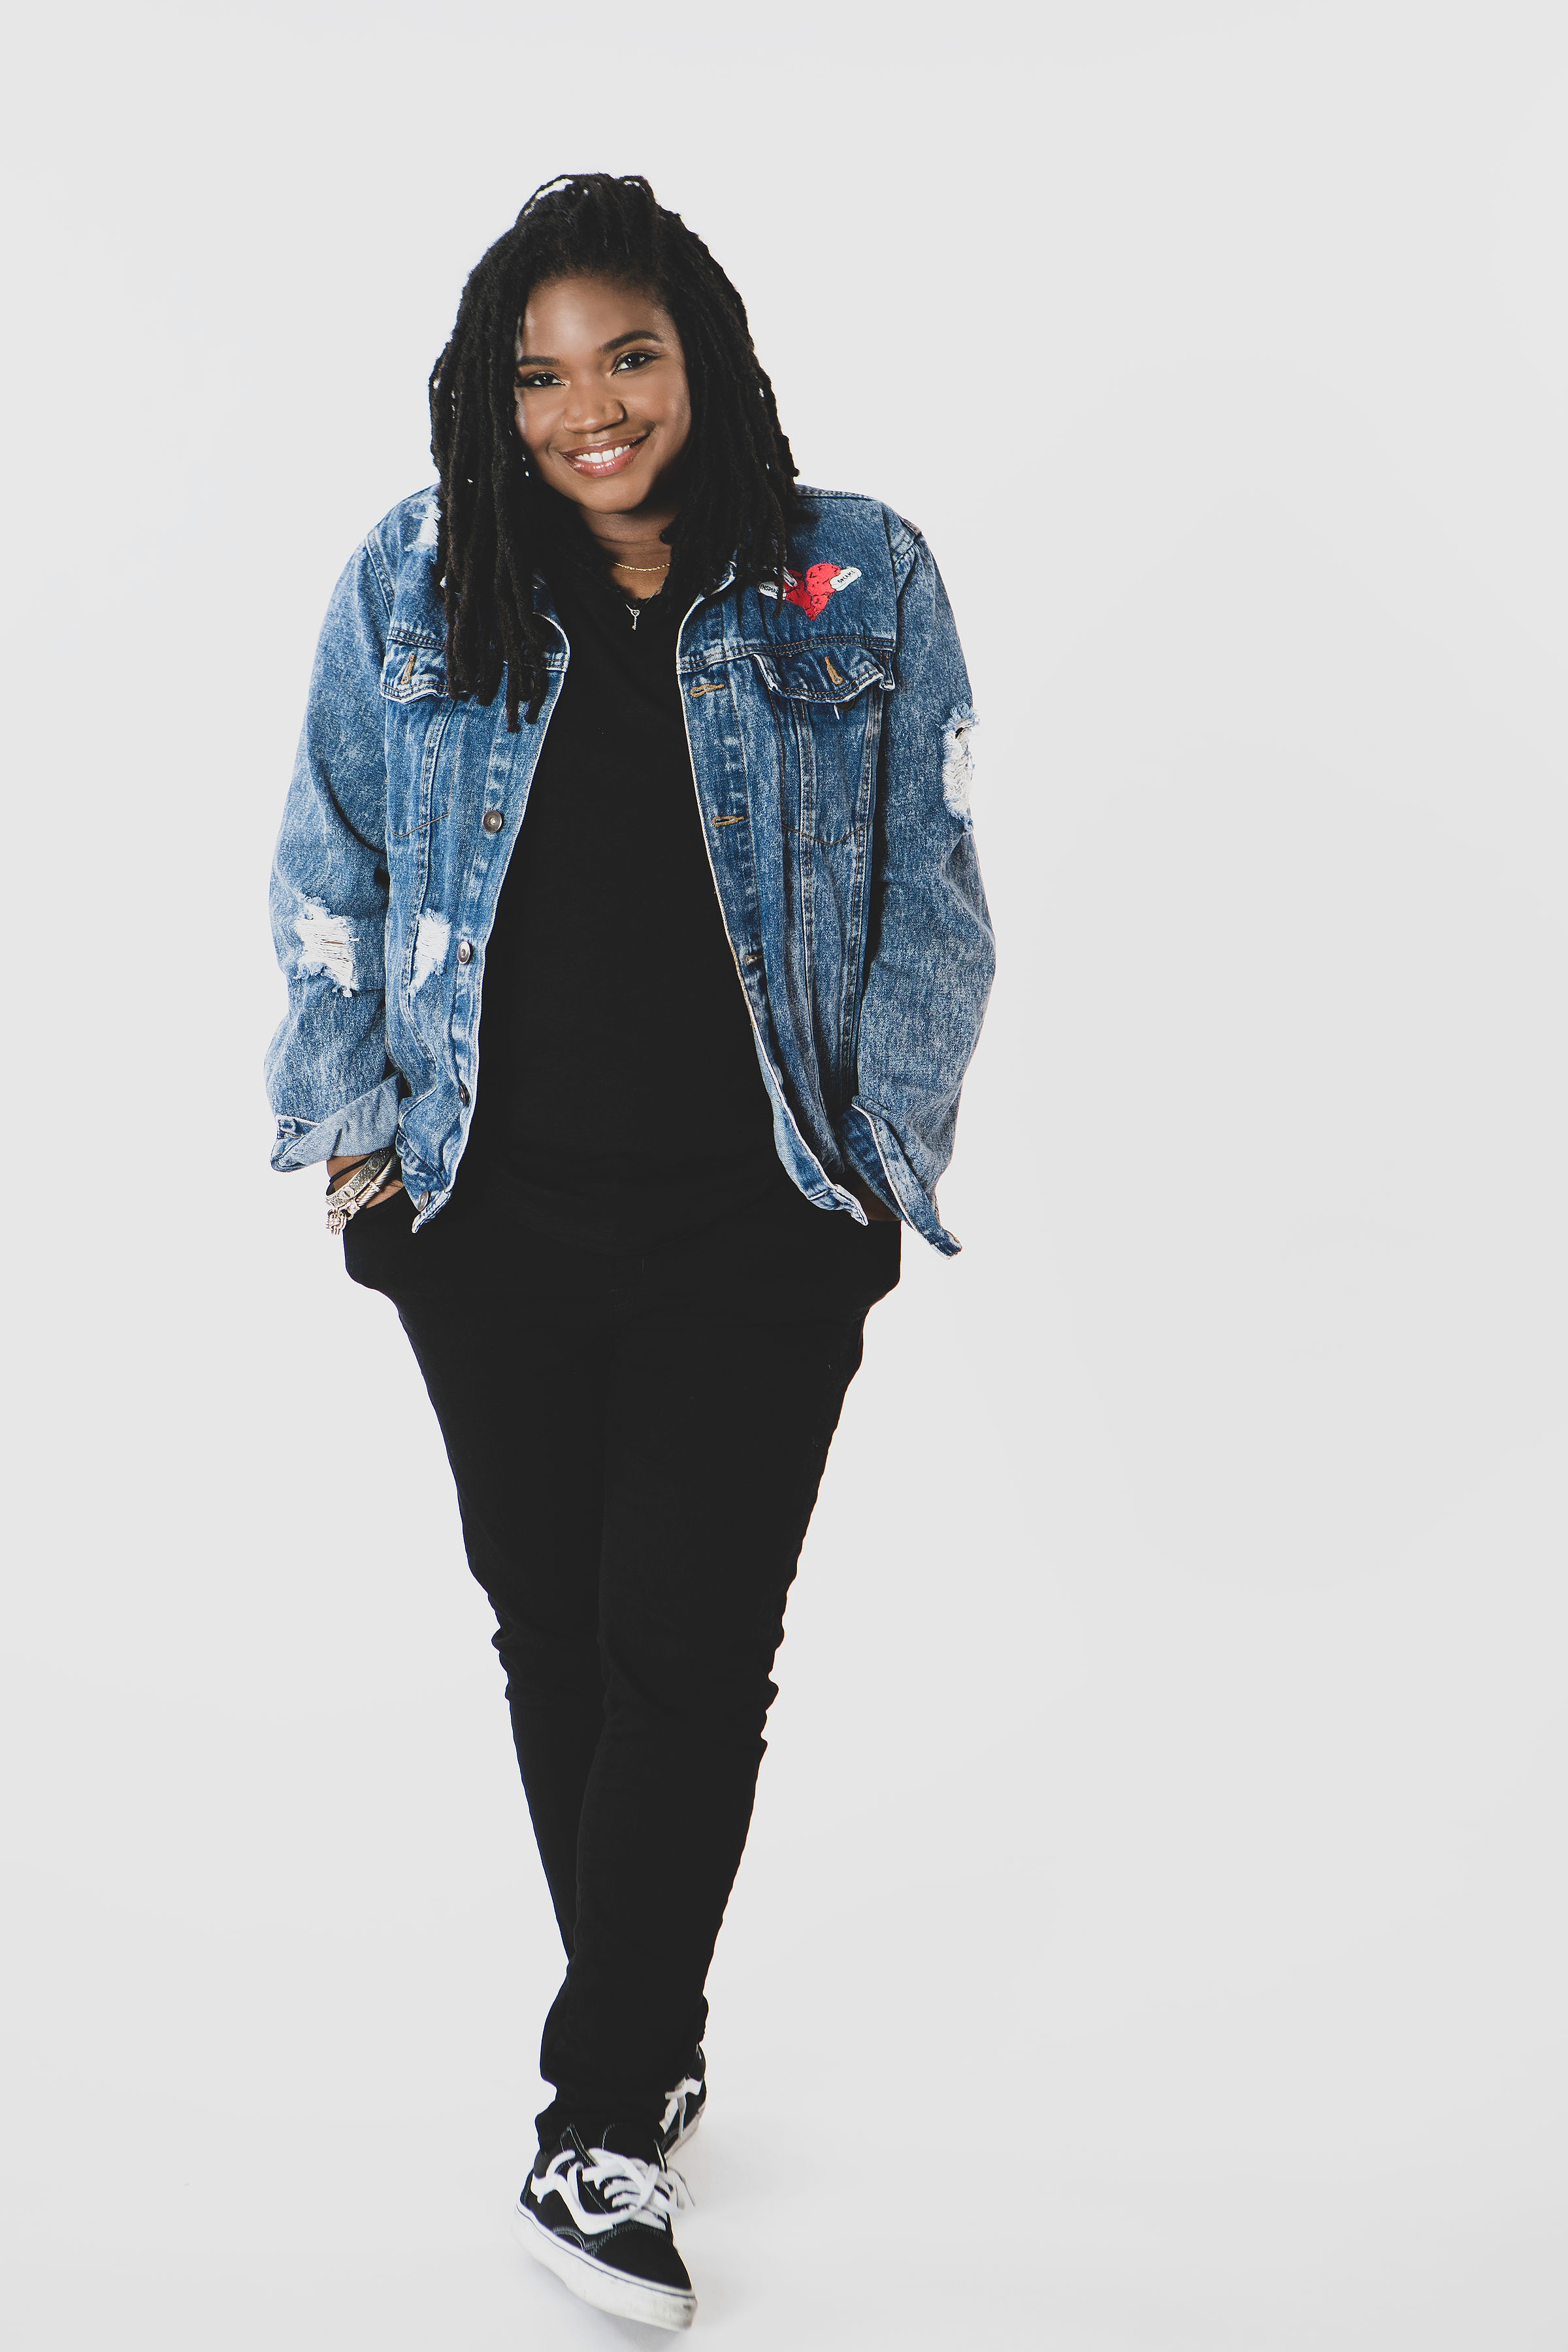 The Morning Hustle: Angie Ange